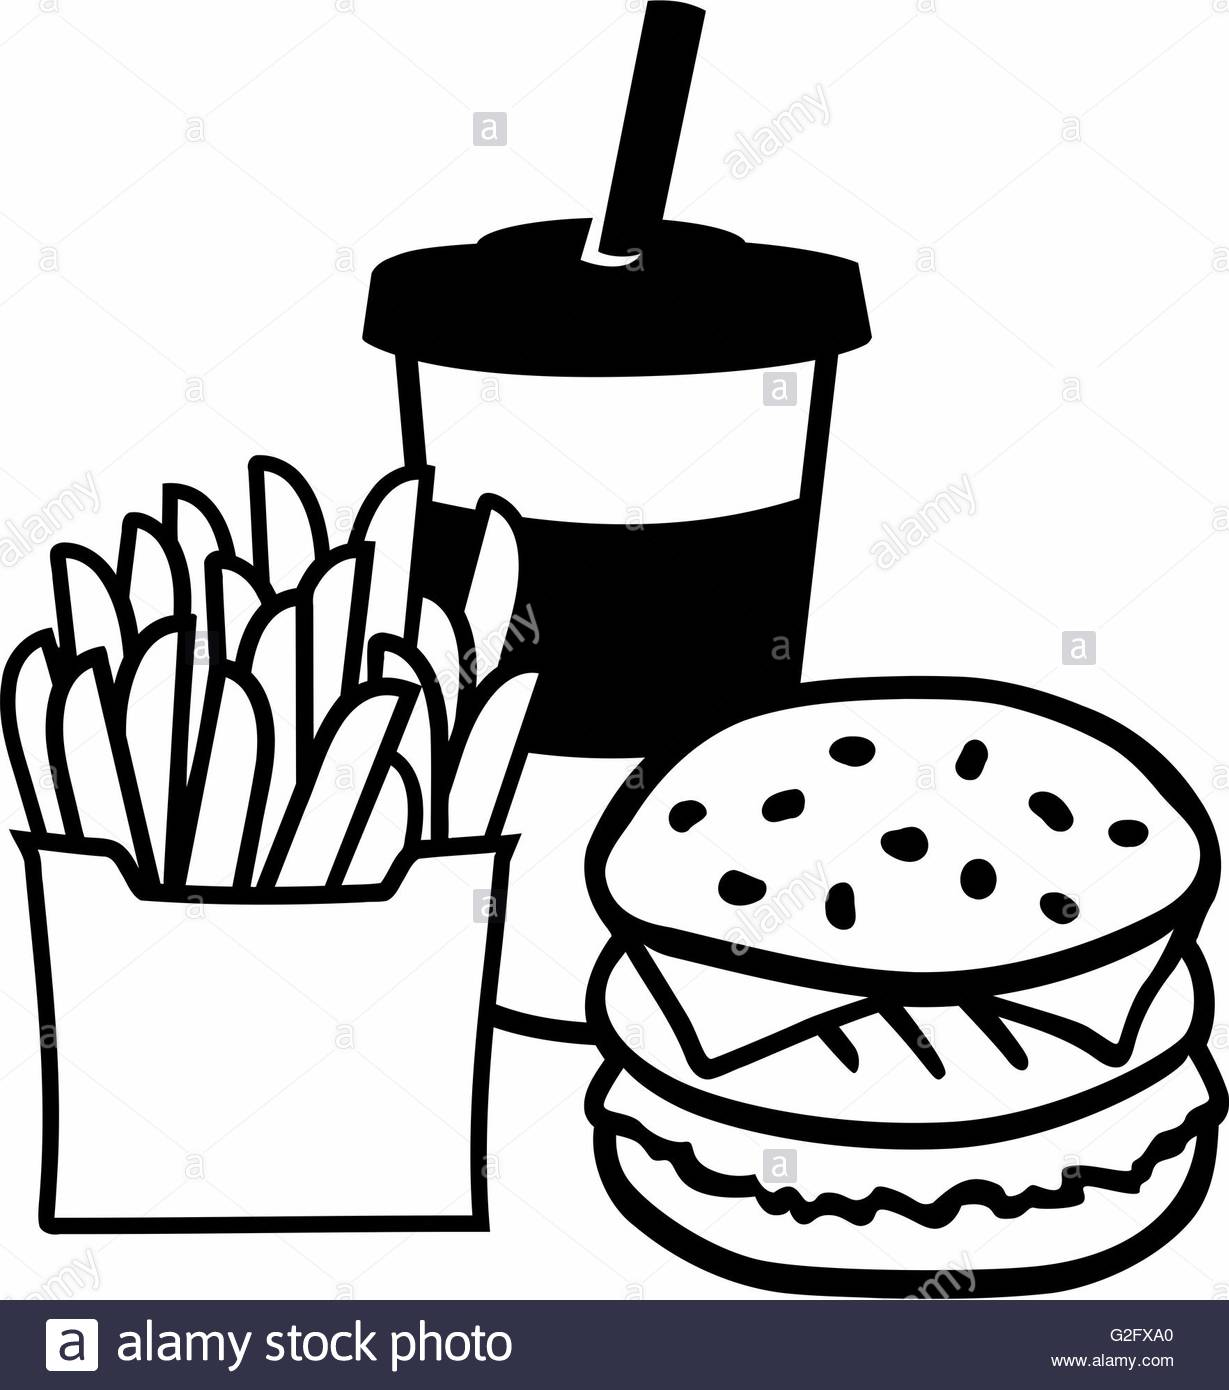 Burger And Fries Black and White Stock Photos & Images.